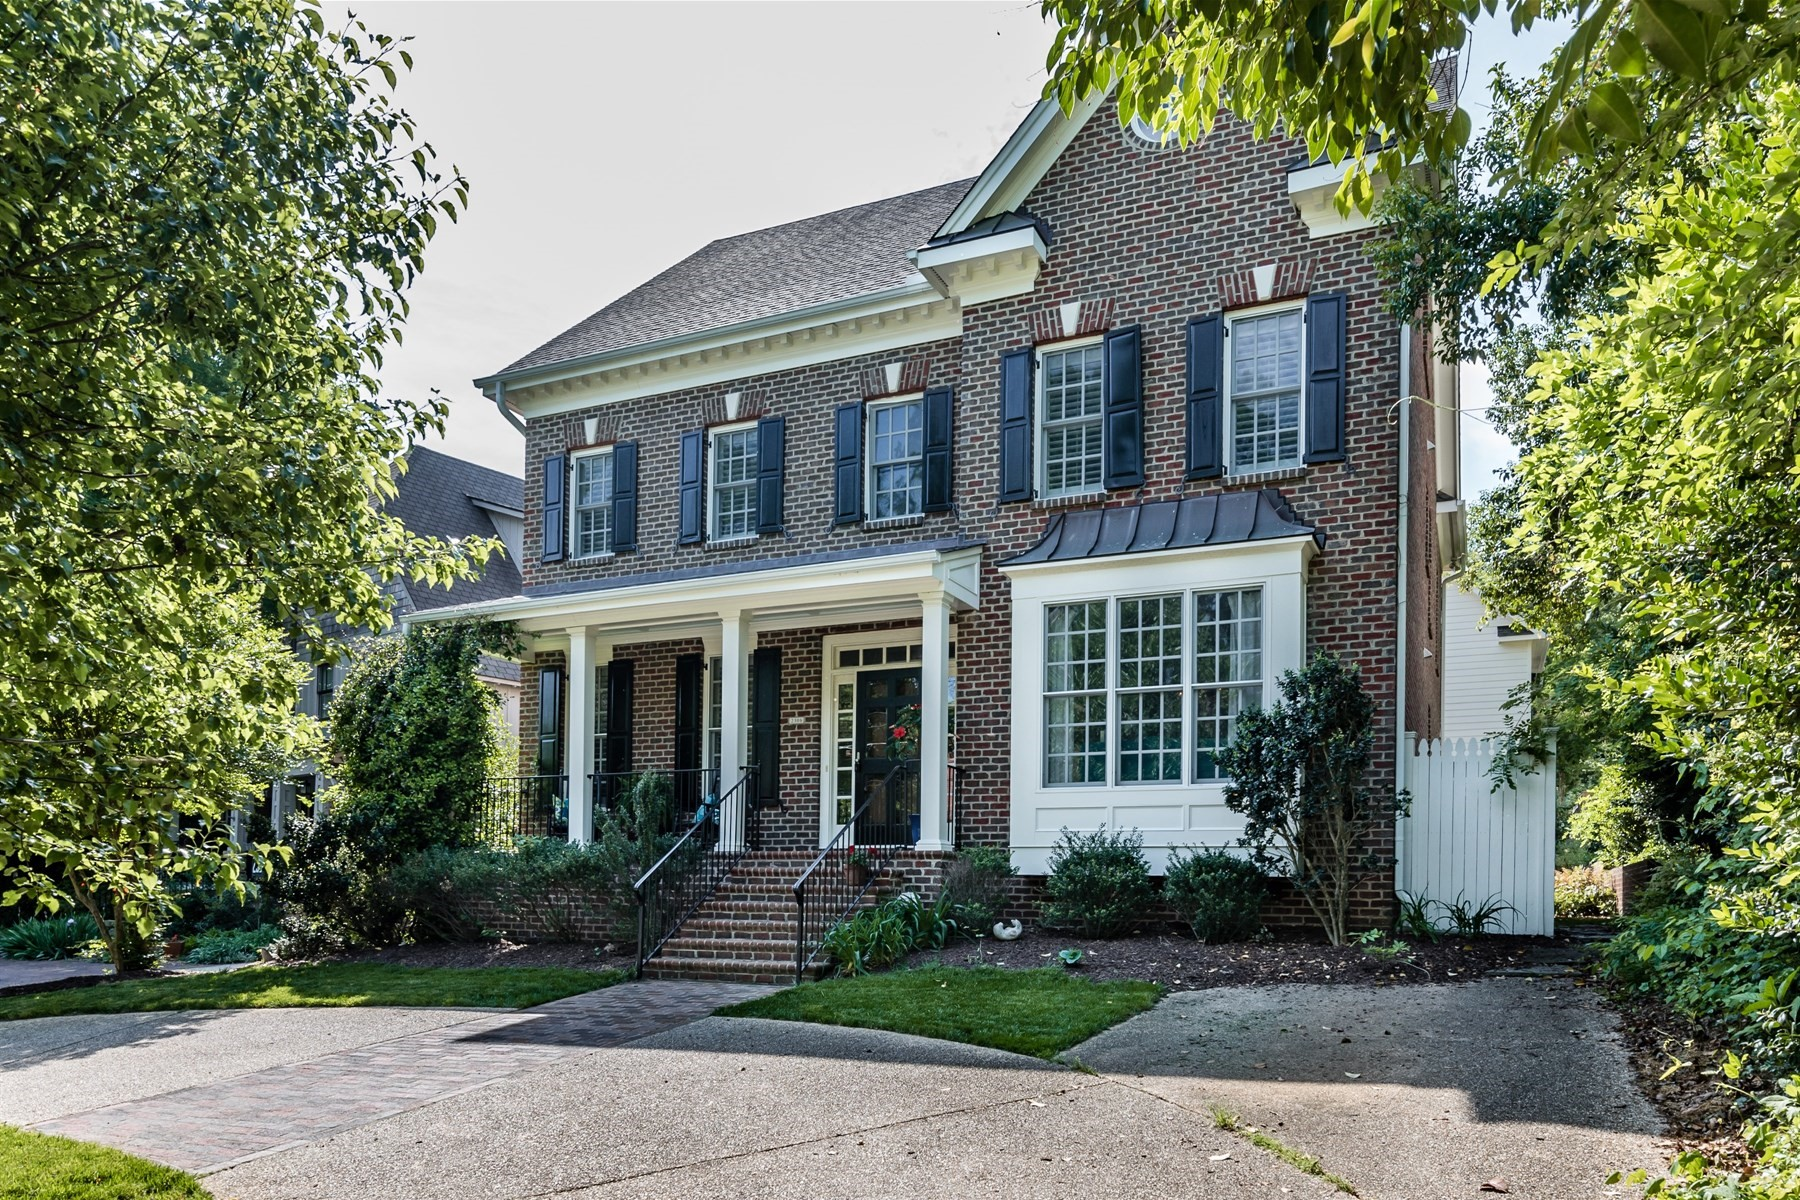 Single Family Home for Sale at 2306 Byrd Street Raleigh, North Carolina, 27608 United States